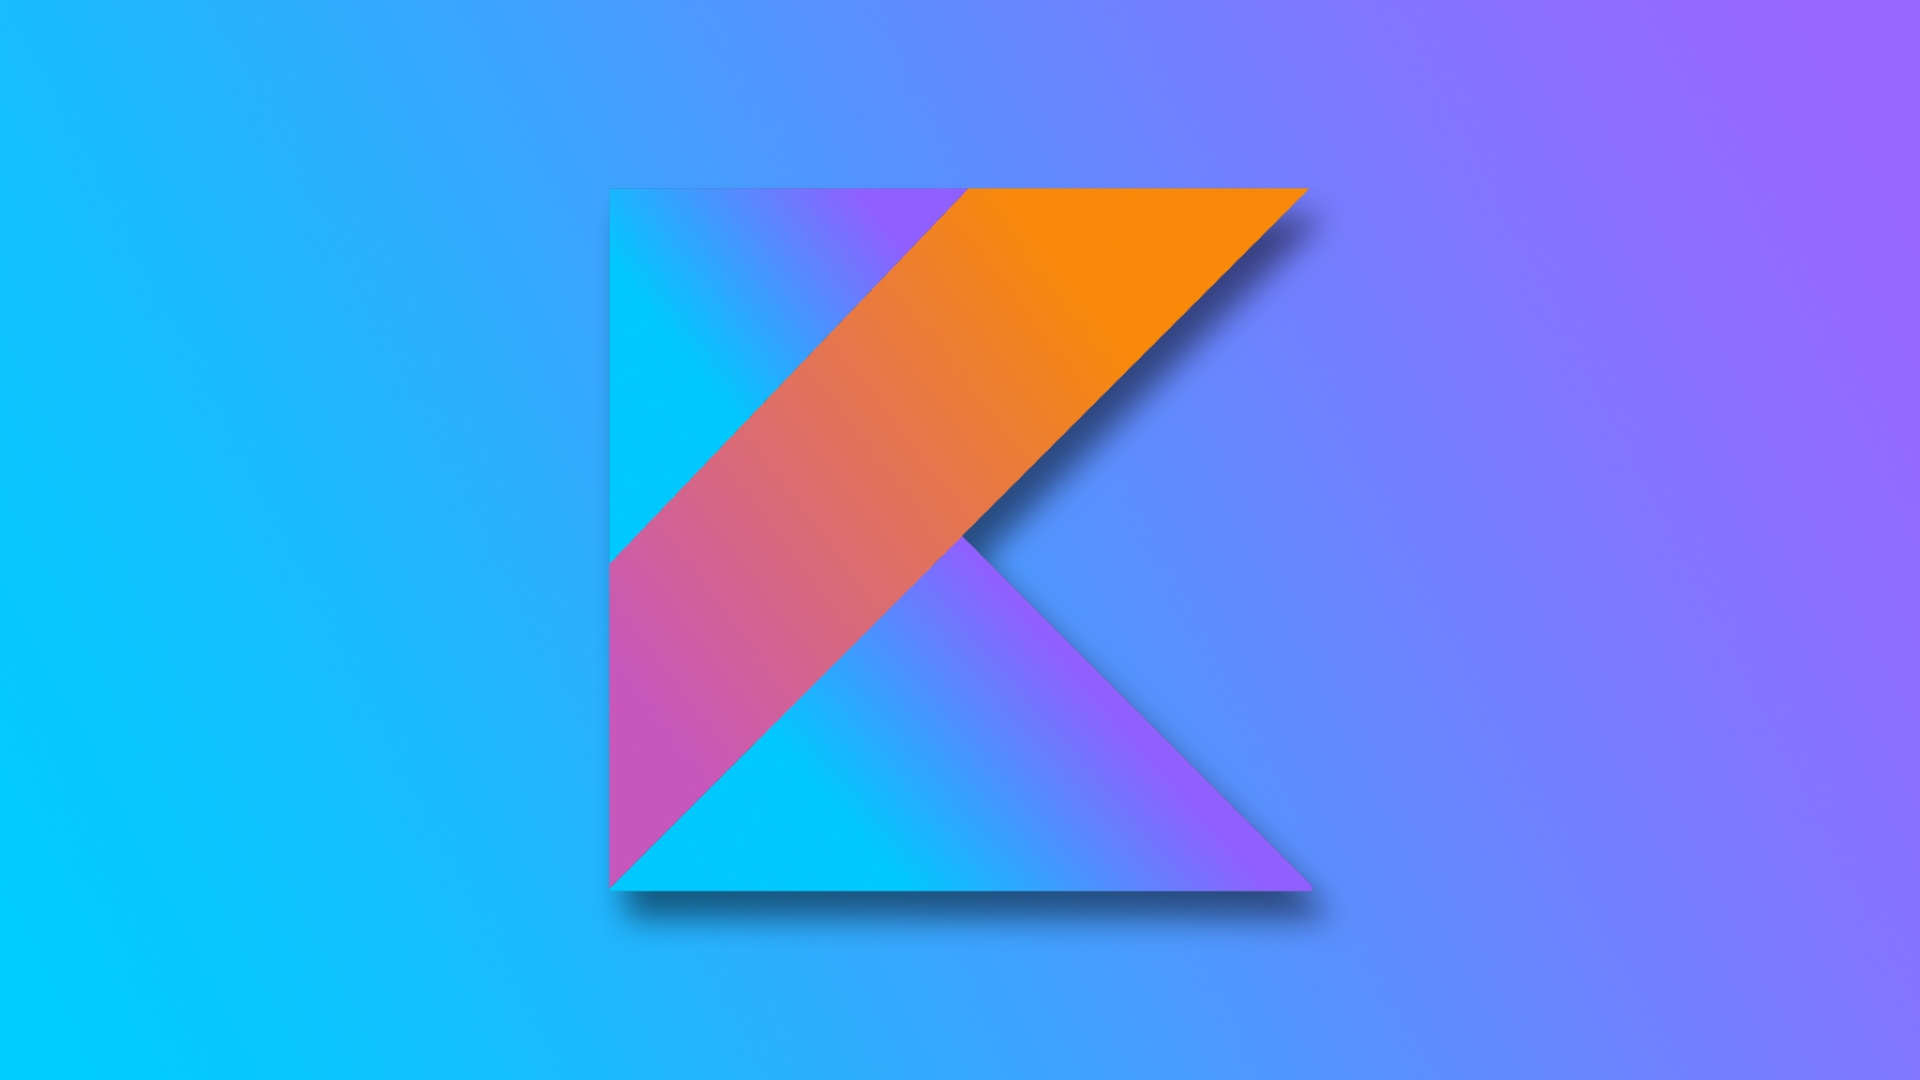 Kotlin for Android: Time to Ditch Java and Learn a New Language?